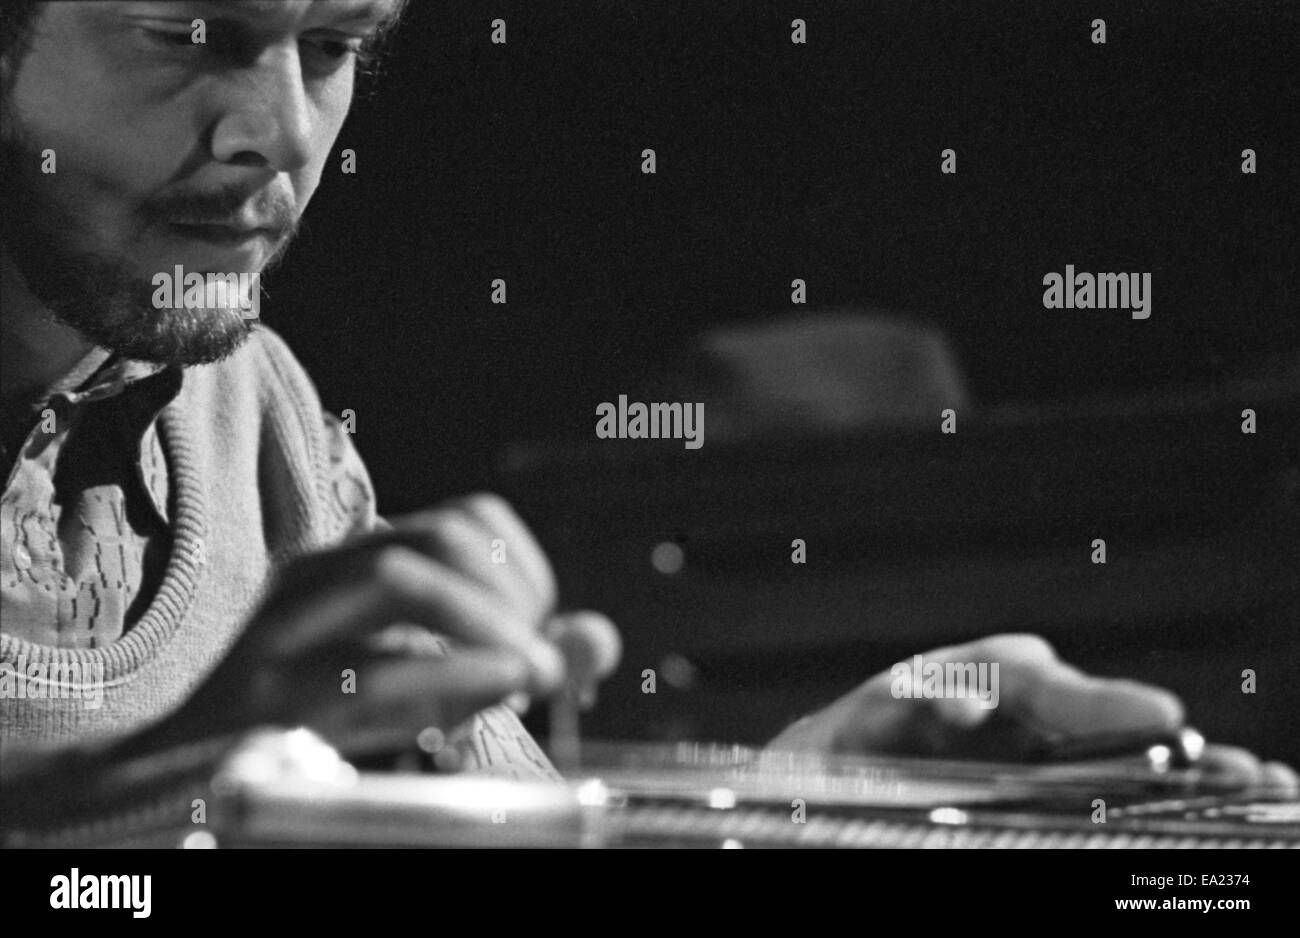 Pedal Steel Guitar Stock Photos & Pedal Steel Guitar Stock Images